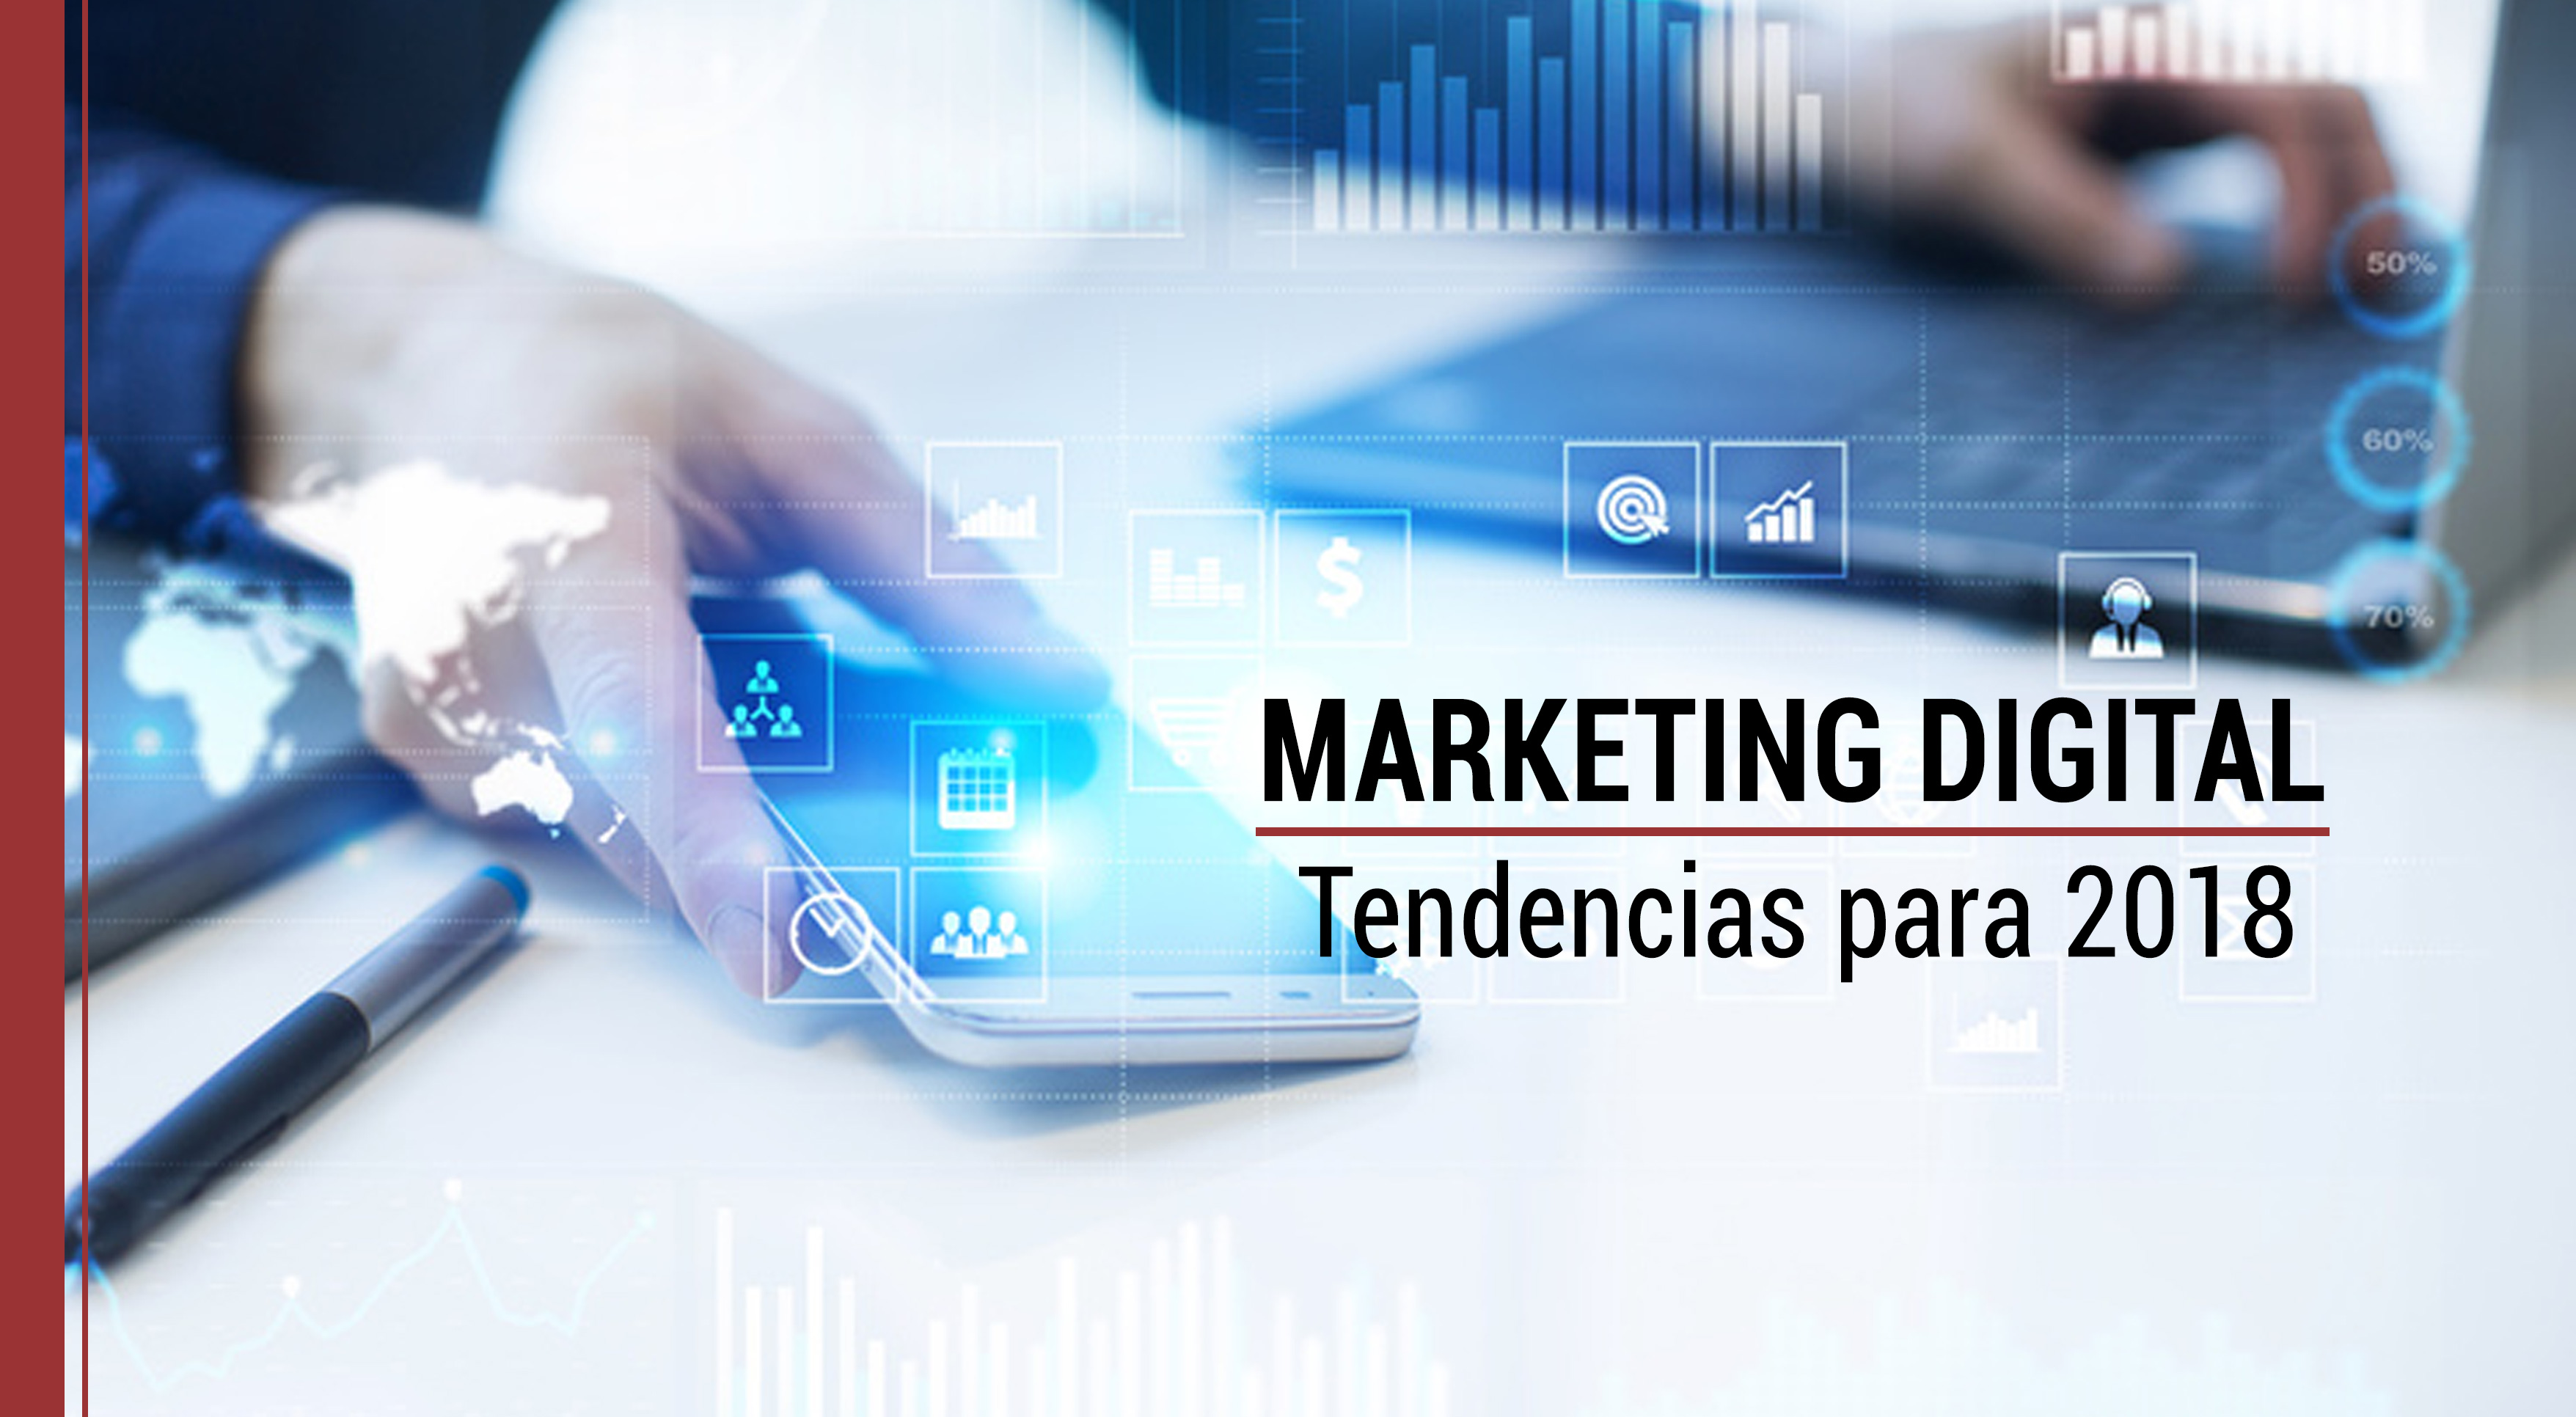 tendencias para 2018 en marketing digital